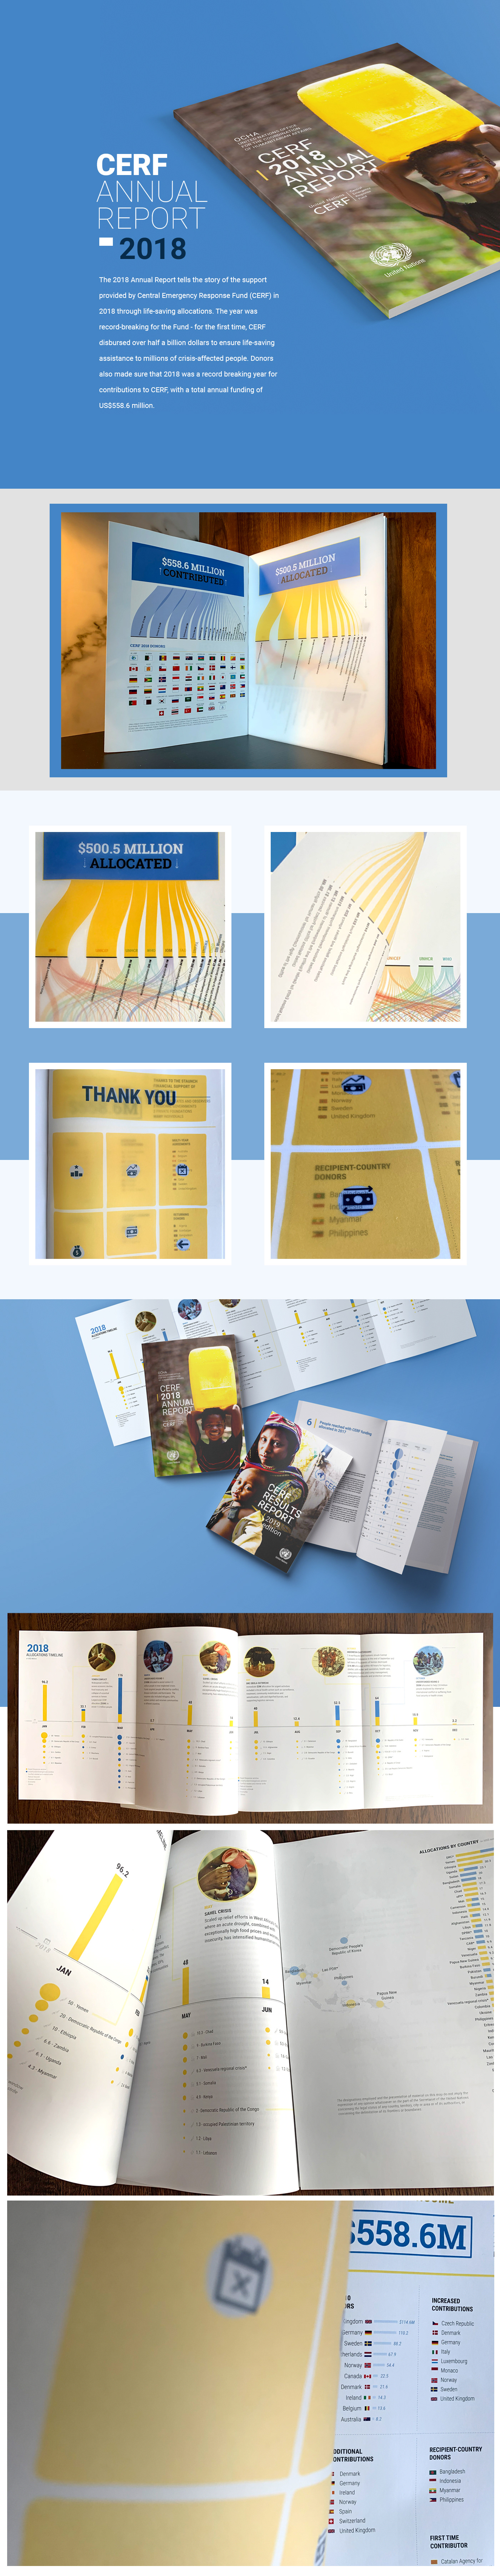 annual report infographic print report